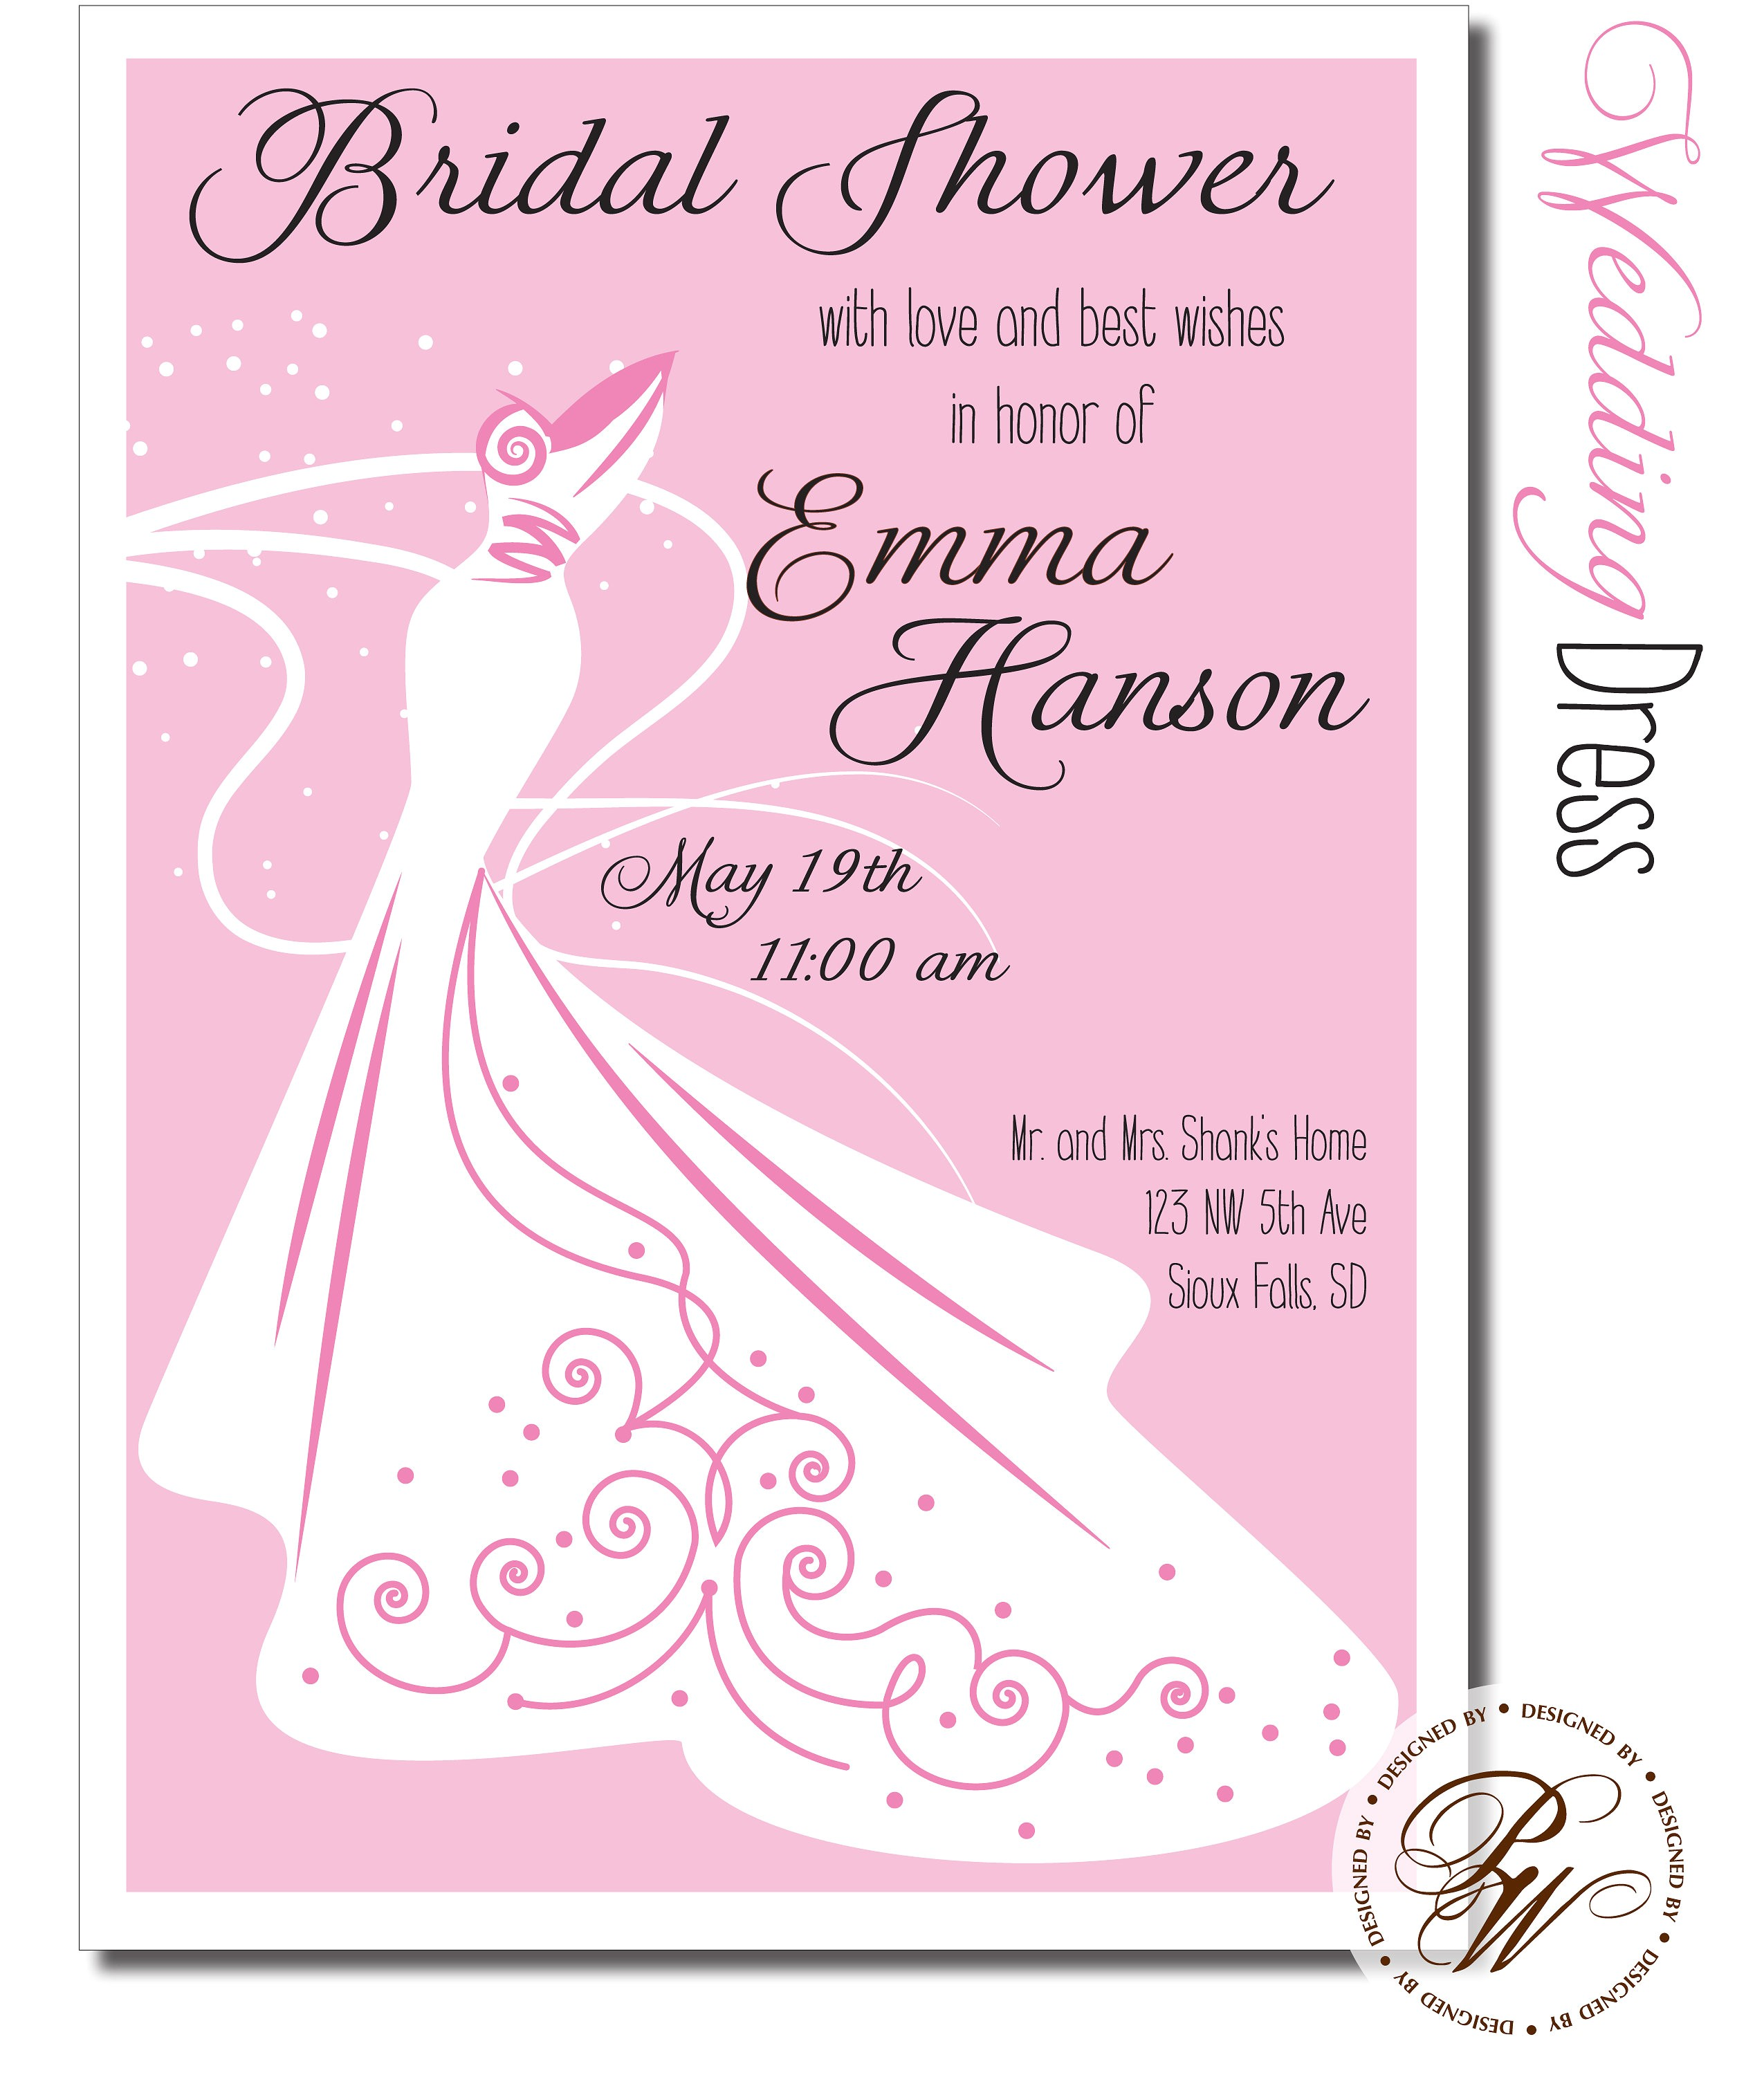 wedding shower invitations bridal shower invitations